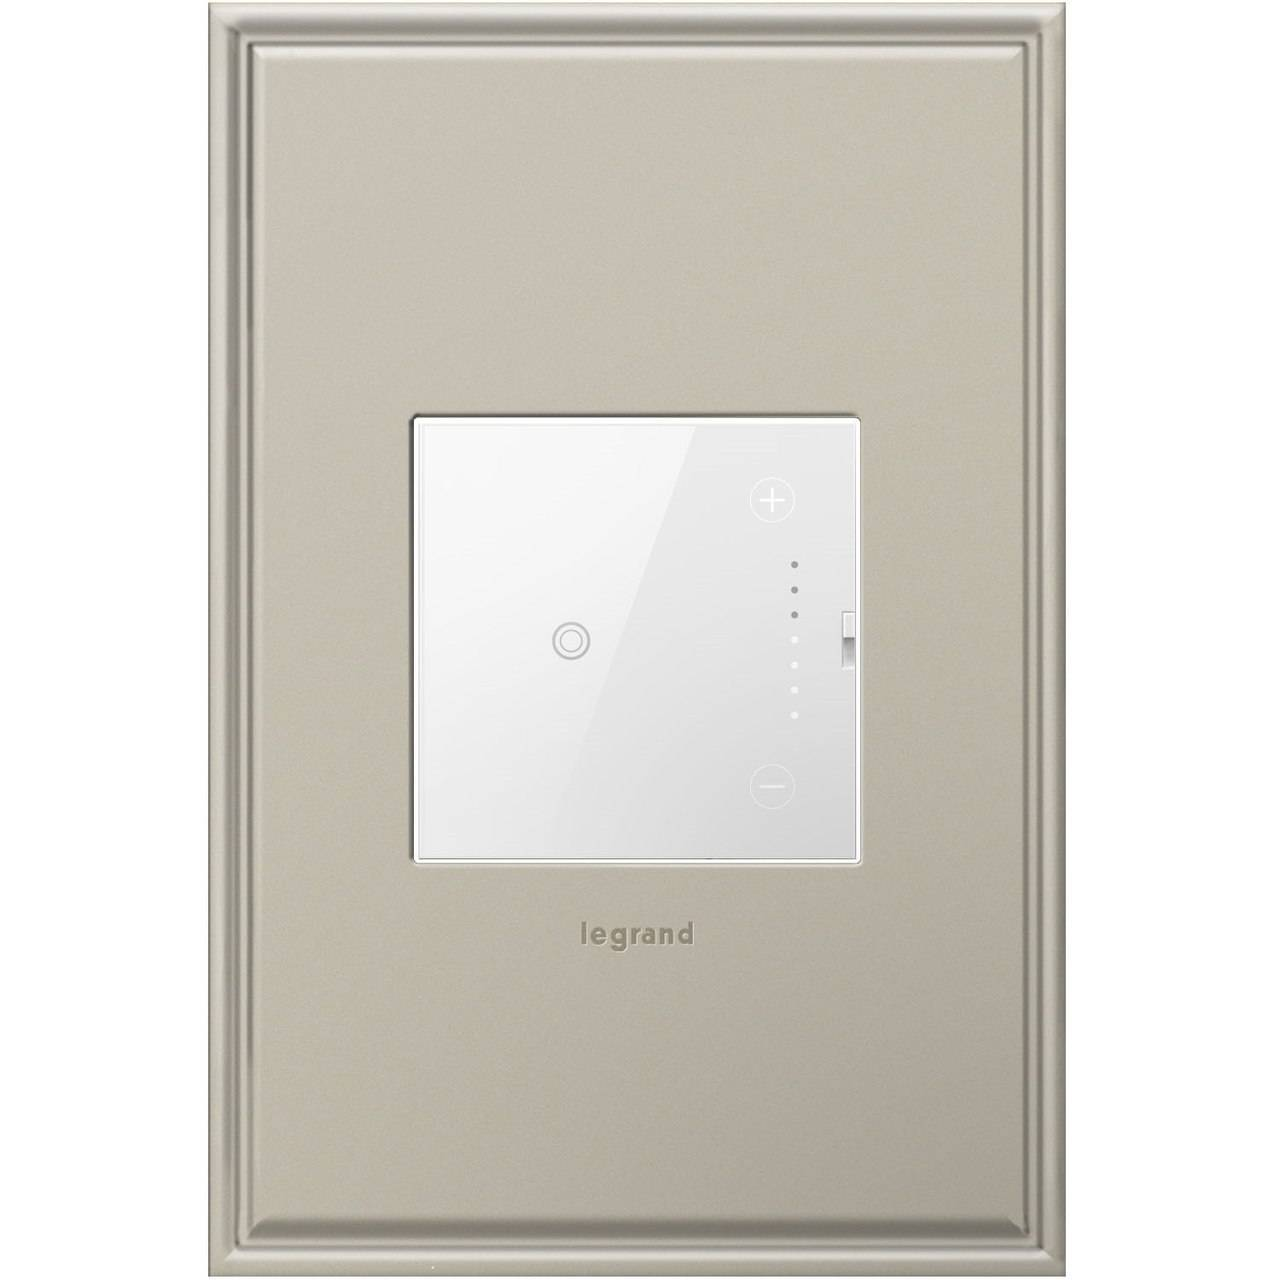 Legrand adorne touch dimmer switch wi-fi ready lighting control